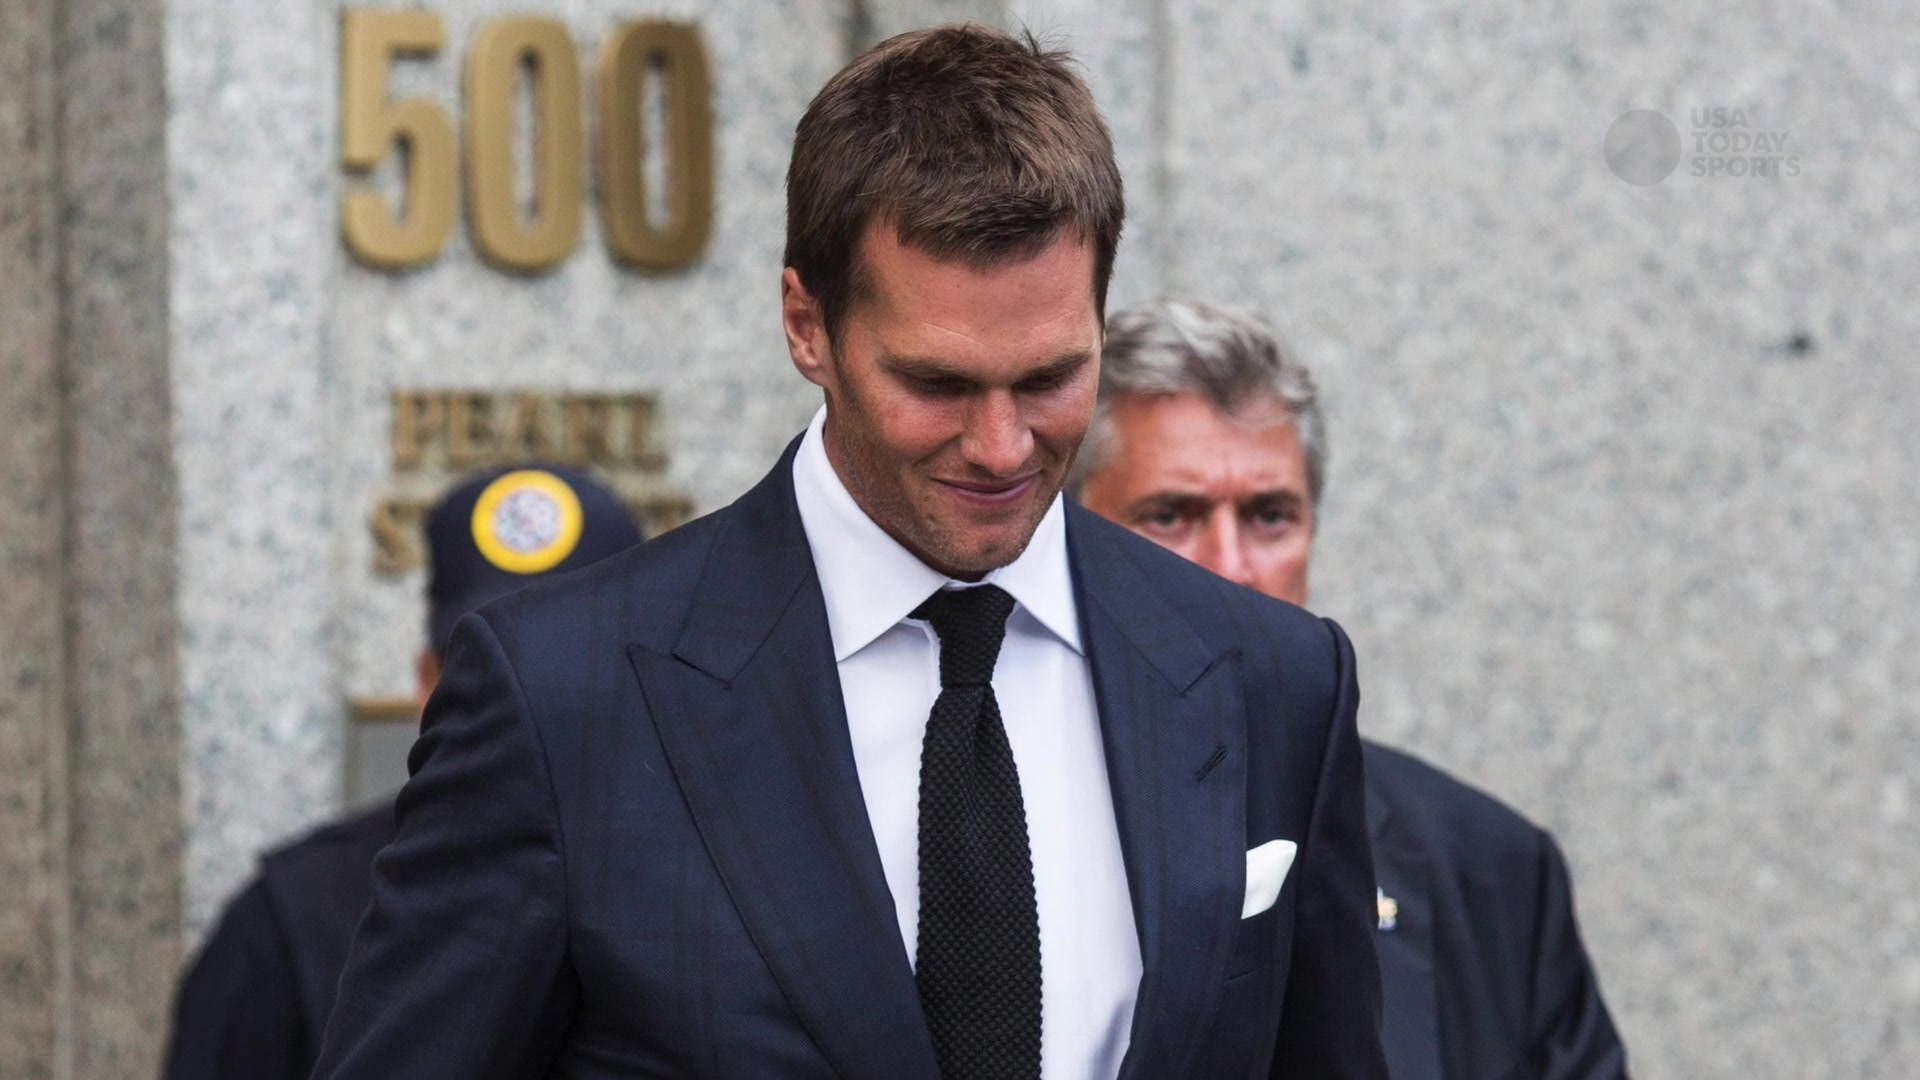 Tom Brady's Four-Game Suspension Reinstated